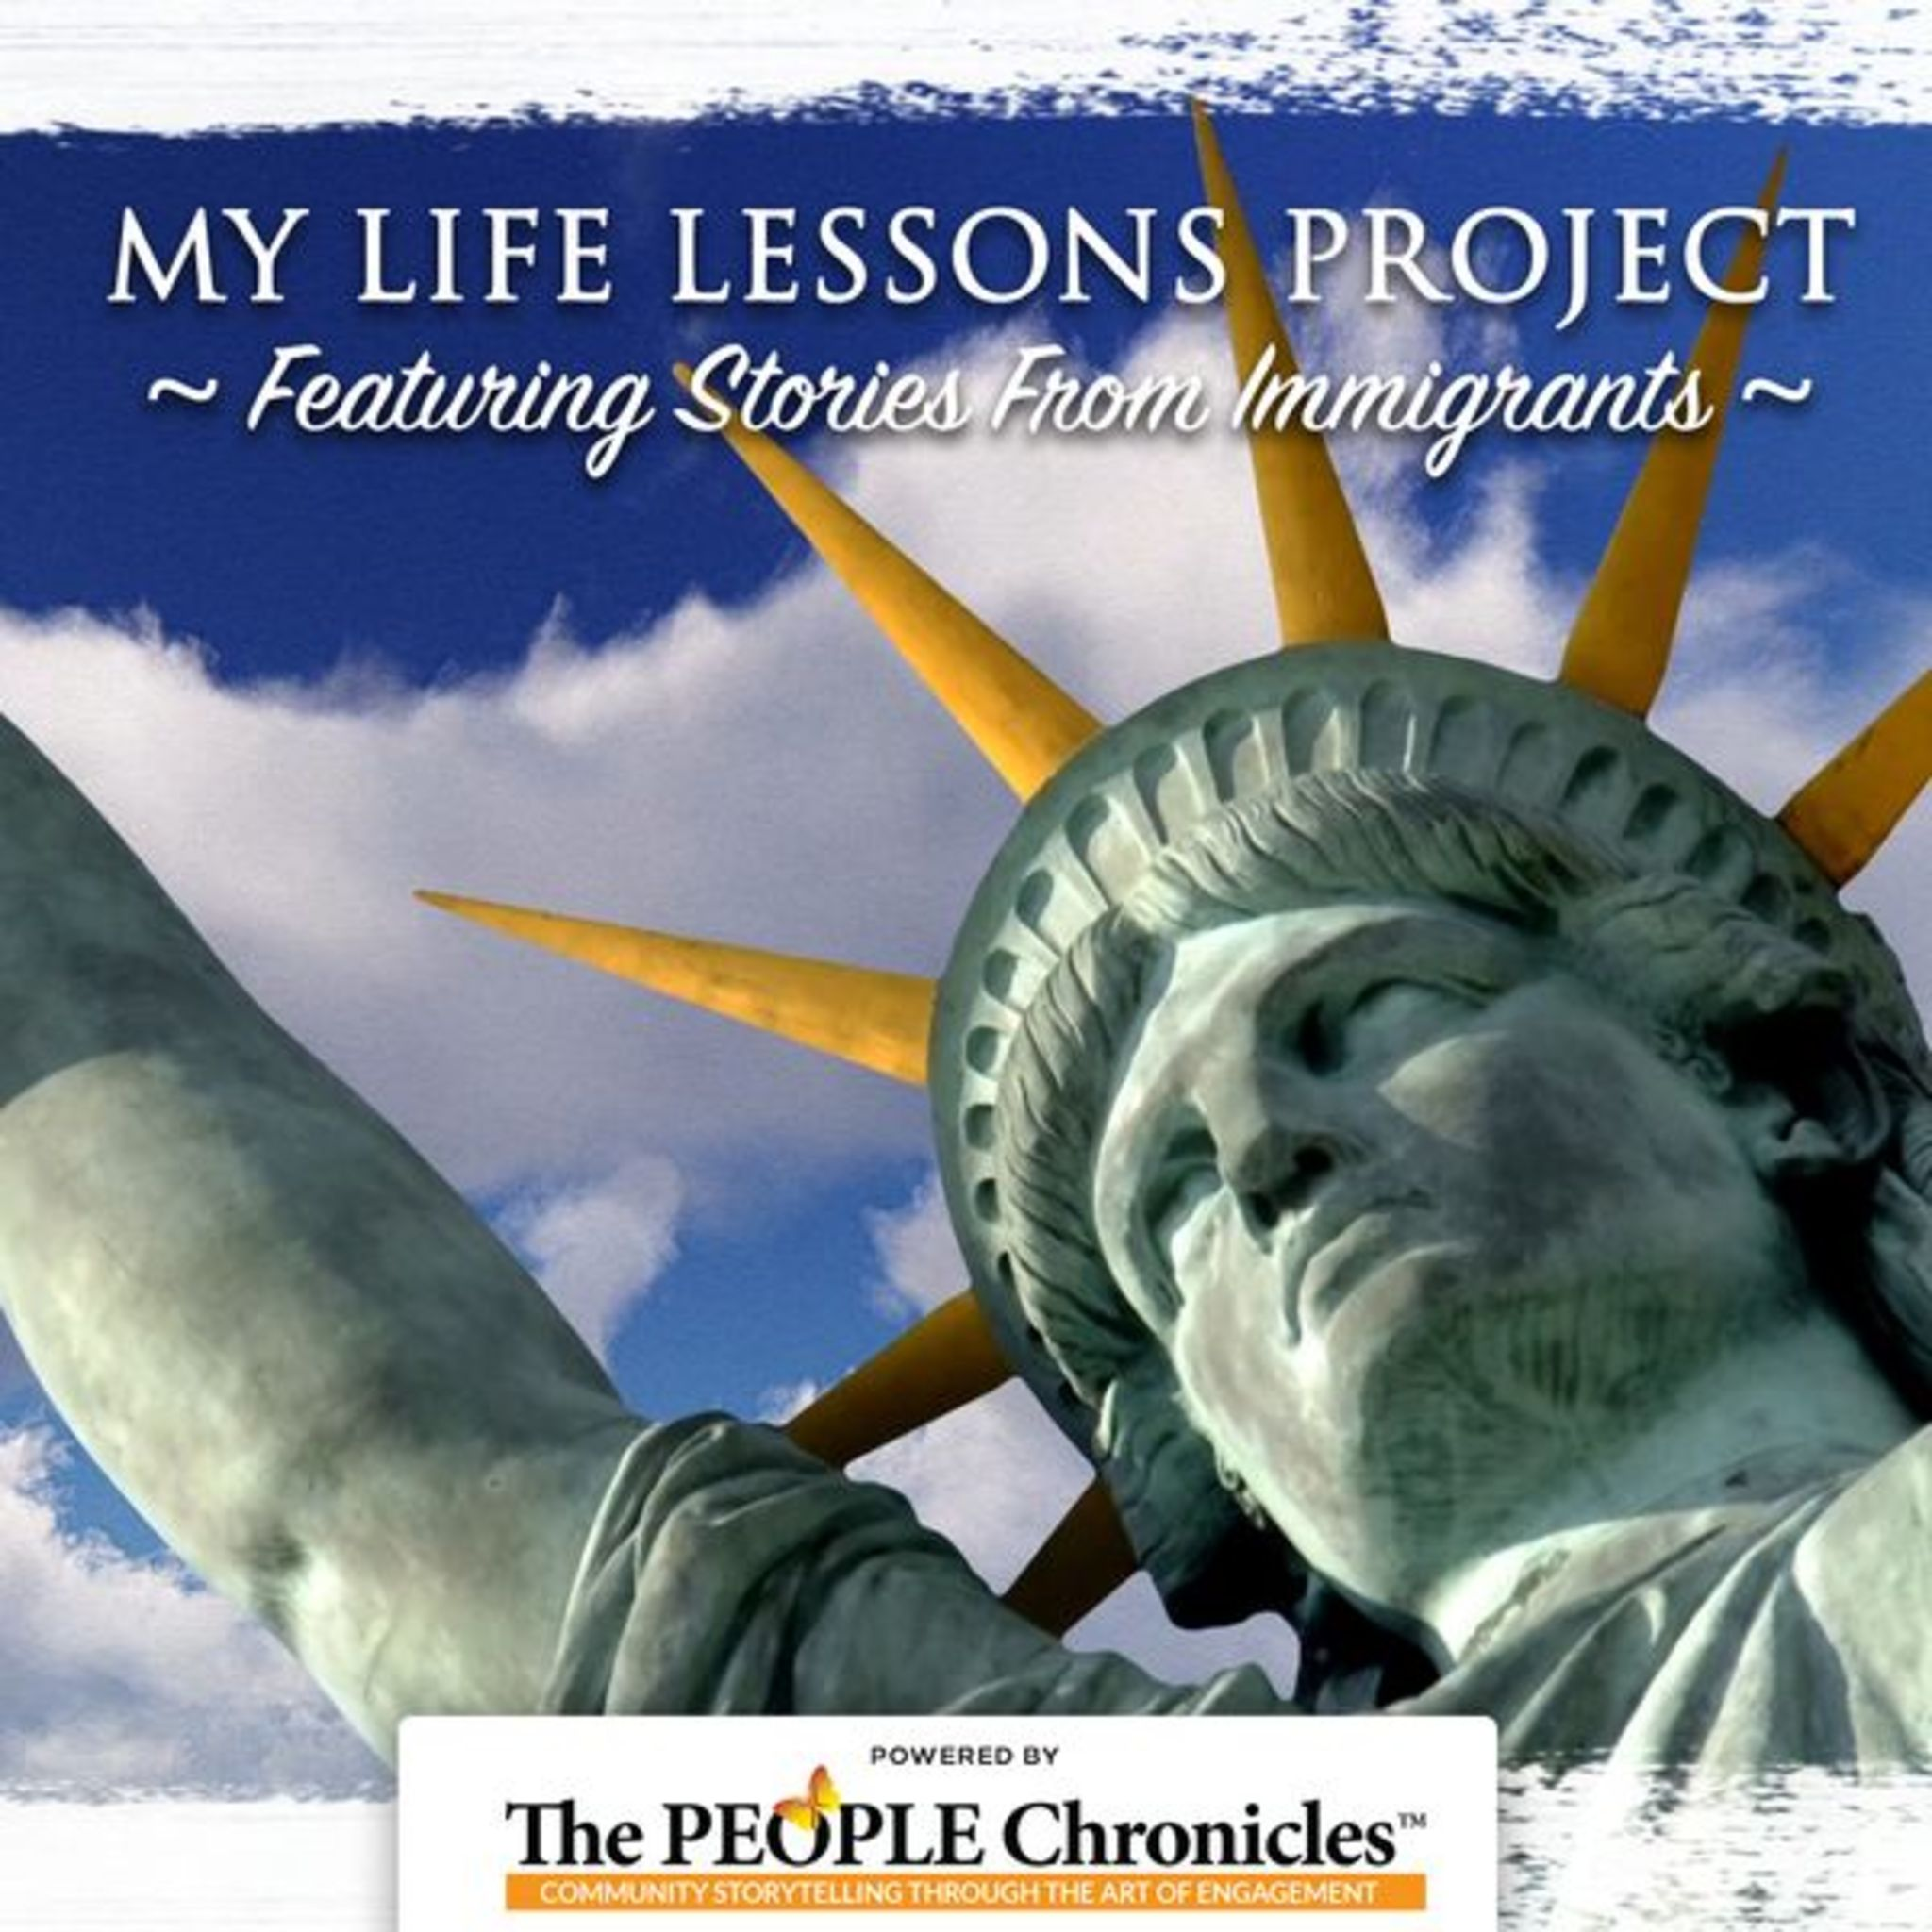 My Life Lessons Project Featuring Stories From Immigrants